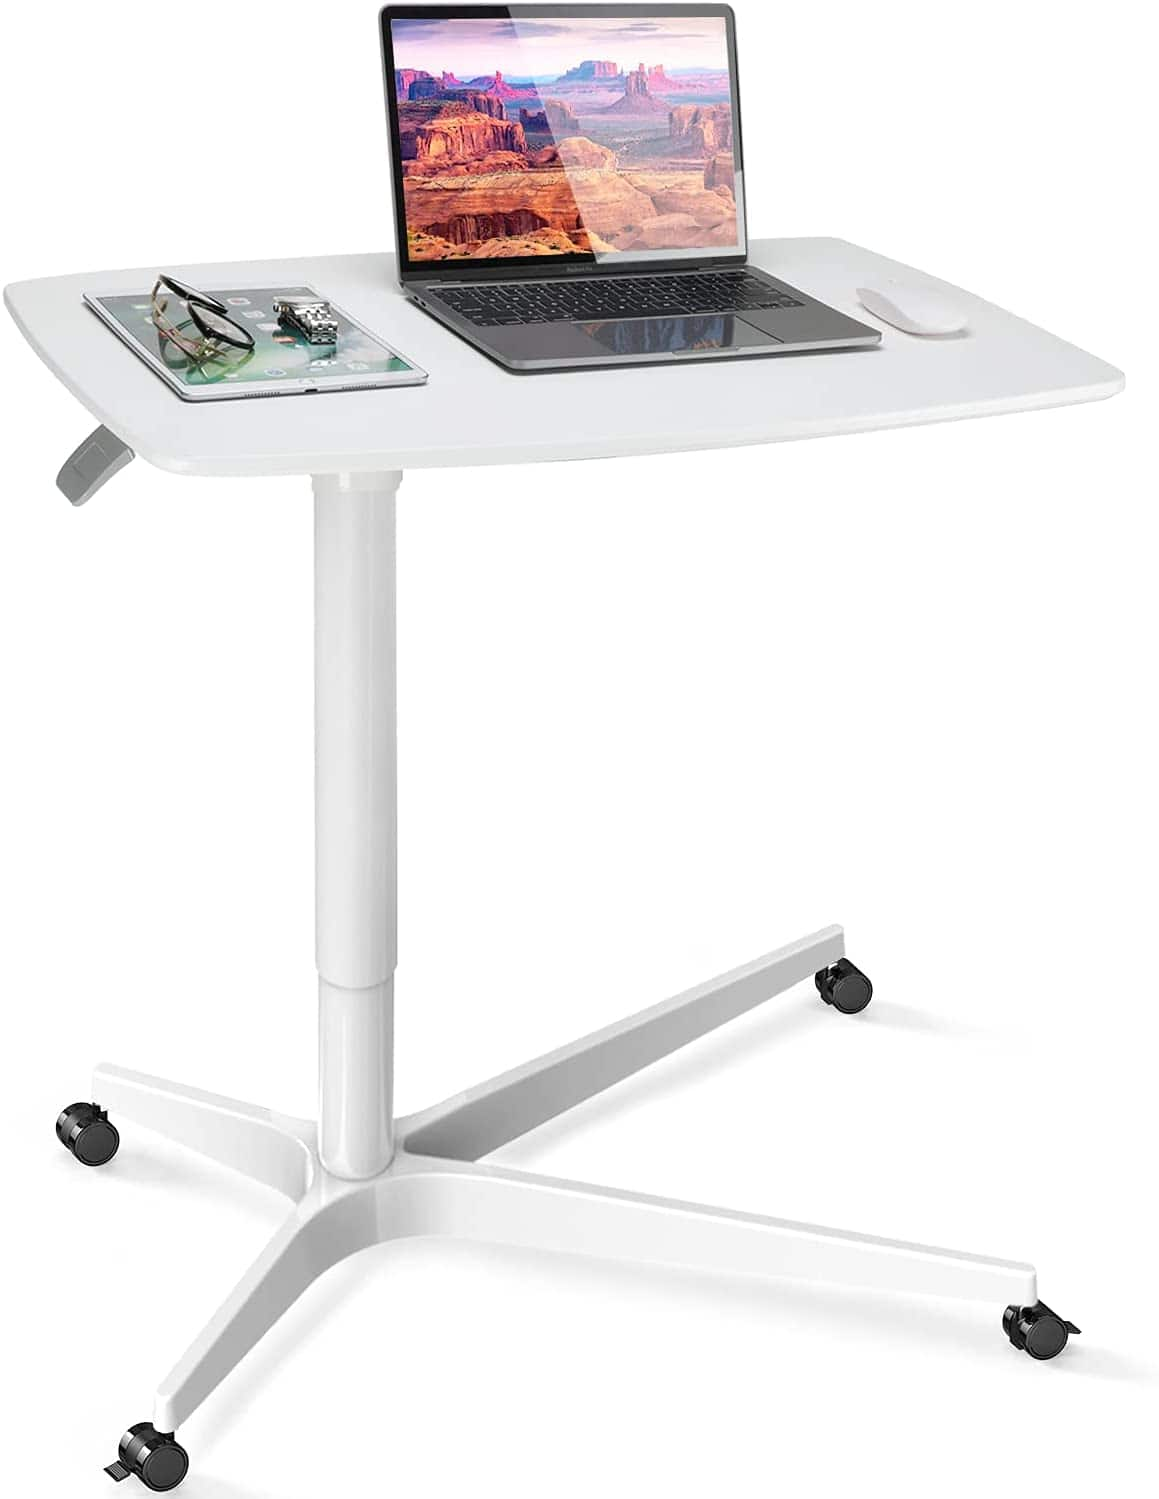 Huanuo Mobile Standing Desk (Height Adjustable Sit to Stand) 30 inches w/ Gas Spring Riser for $93.47 + Free Shipping w/ Prime or $25+